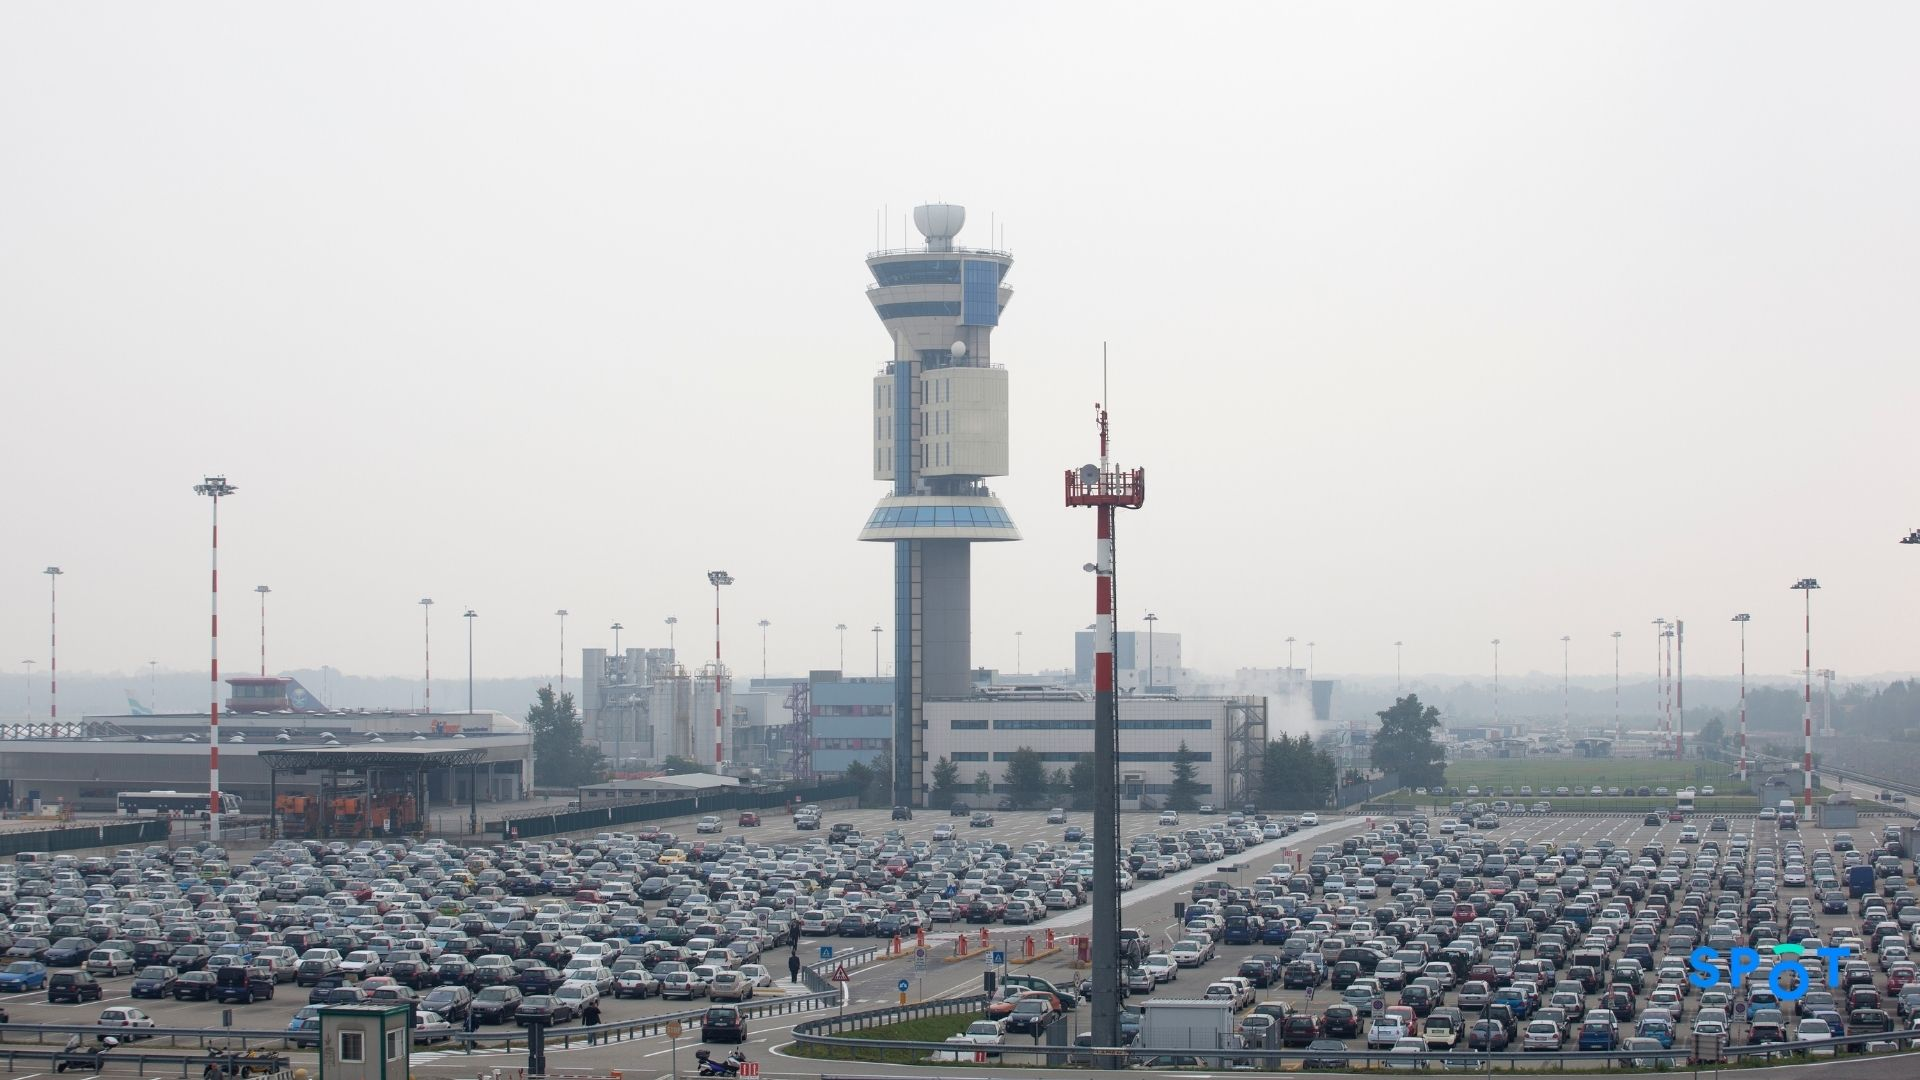 The challenges and opportunities of airport parking